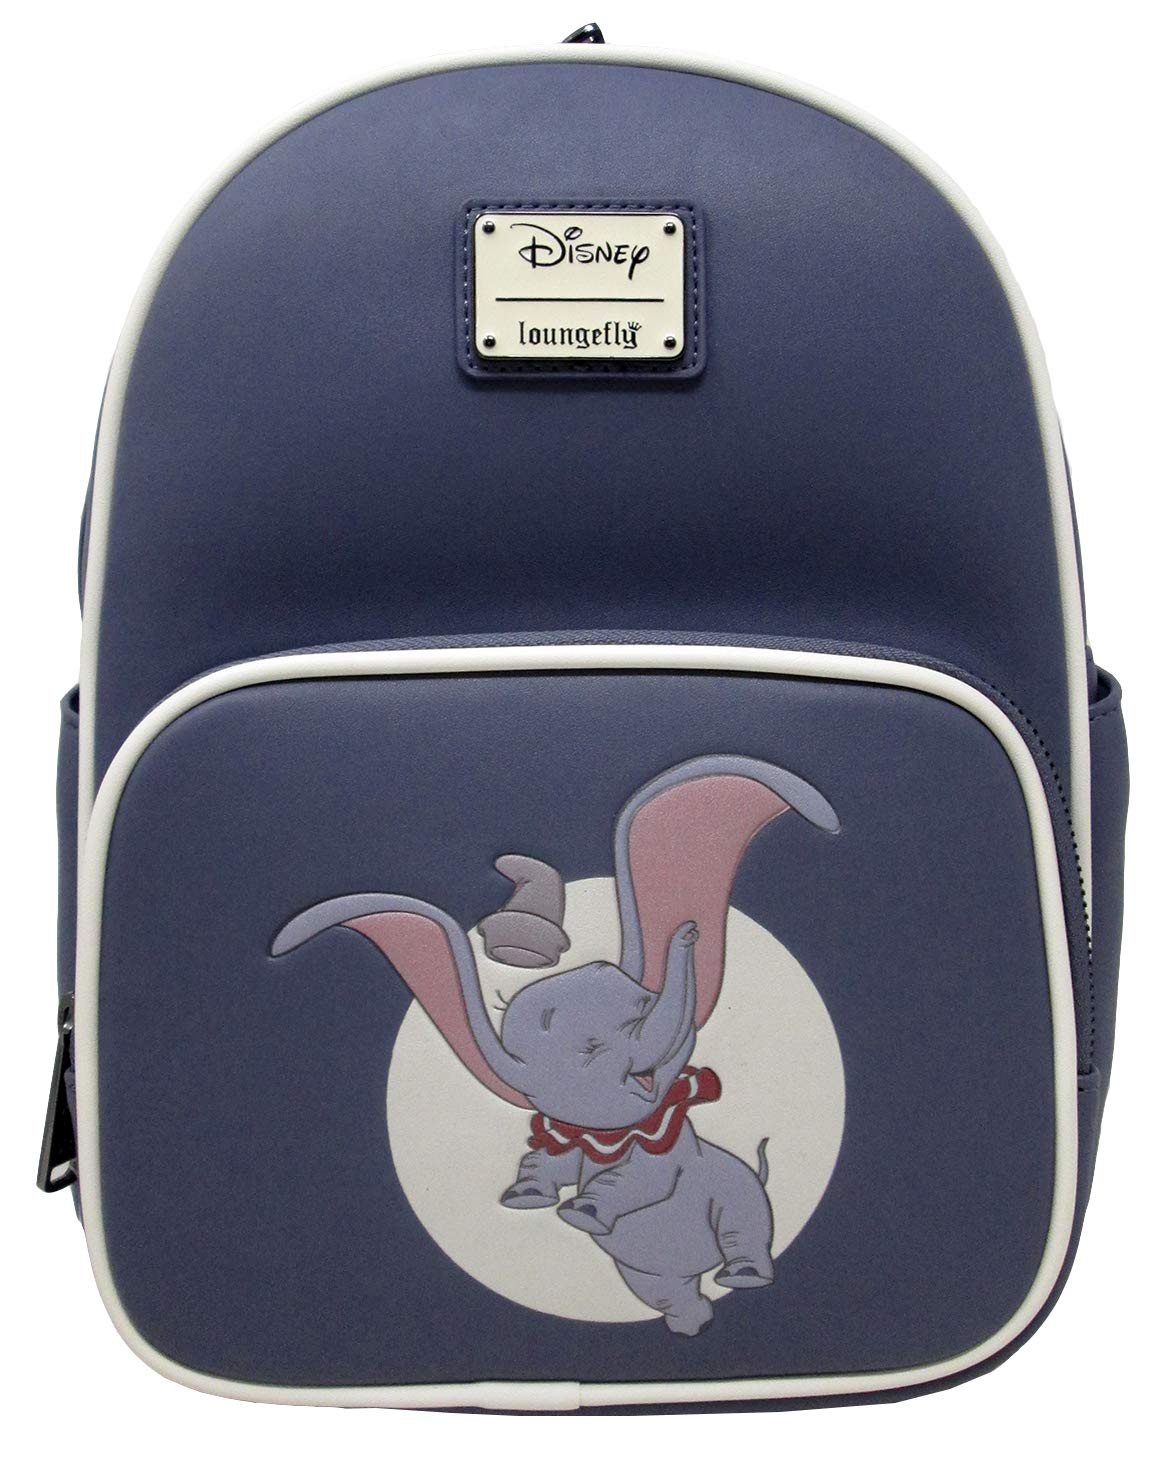 Loungefly x Disney Dumbo Flying On A Dream Convertible Mini Backpack